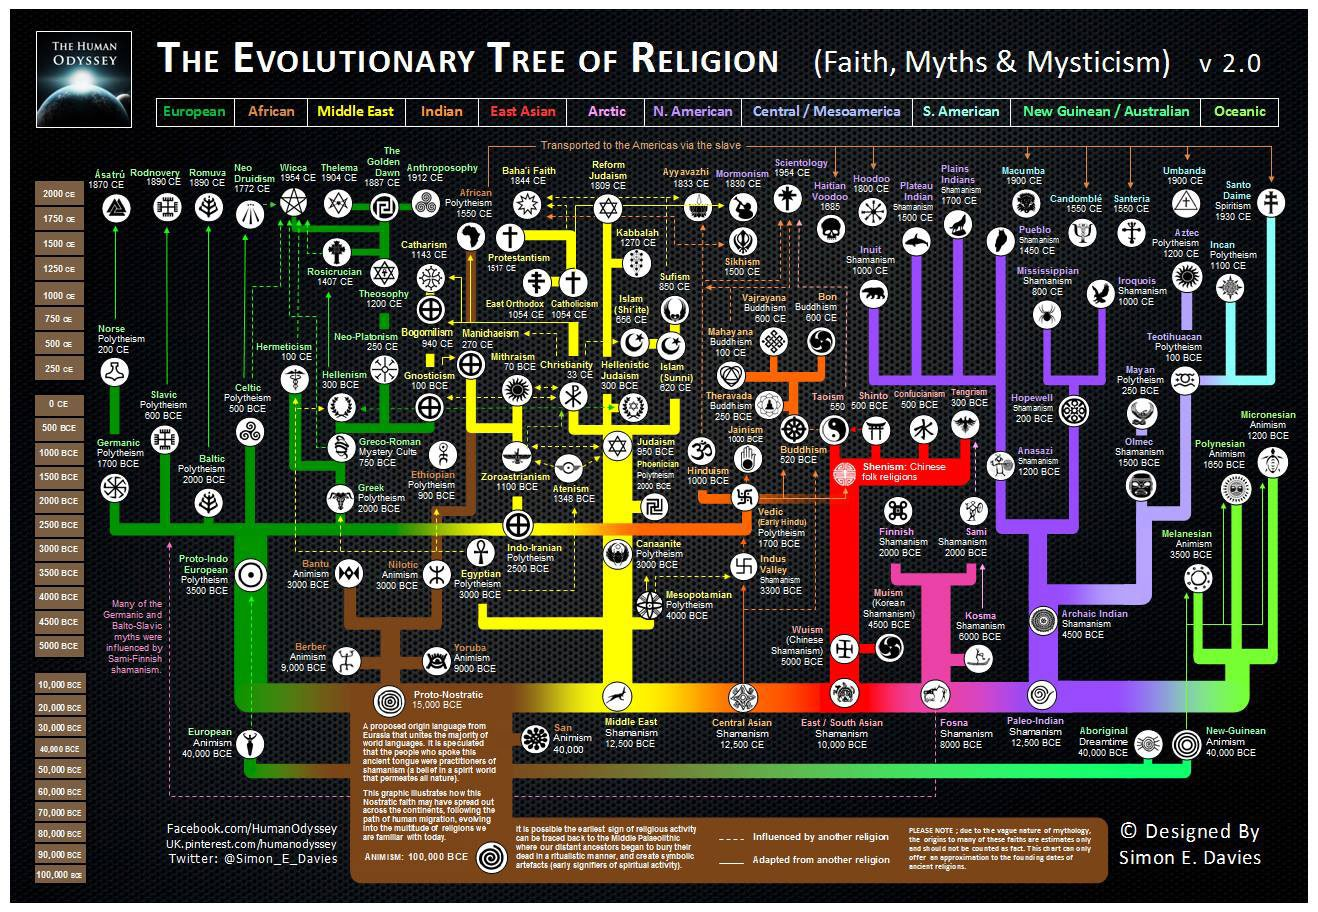 THE EVOLUTIONARY TREE OF RELIGION (FAITH, MYTHS, MYSTICISM)